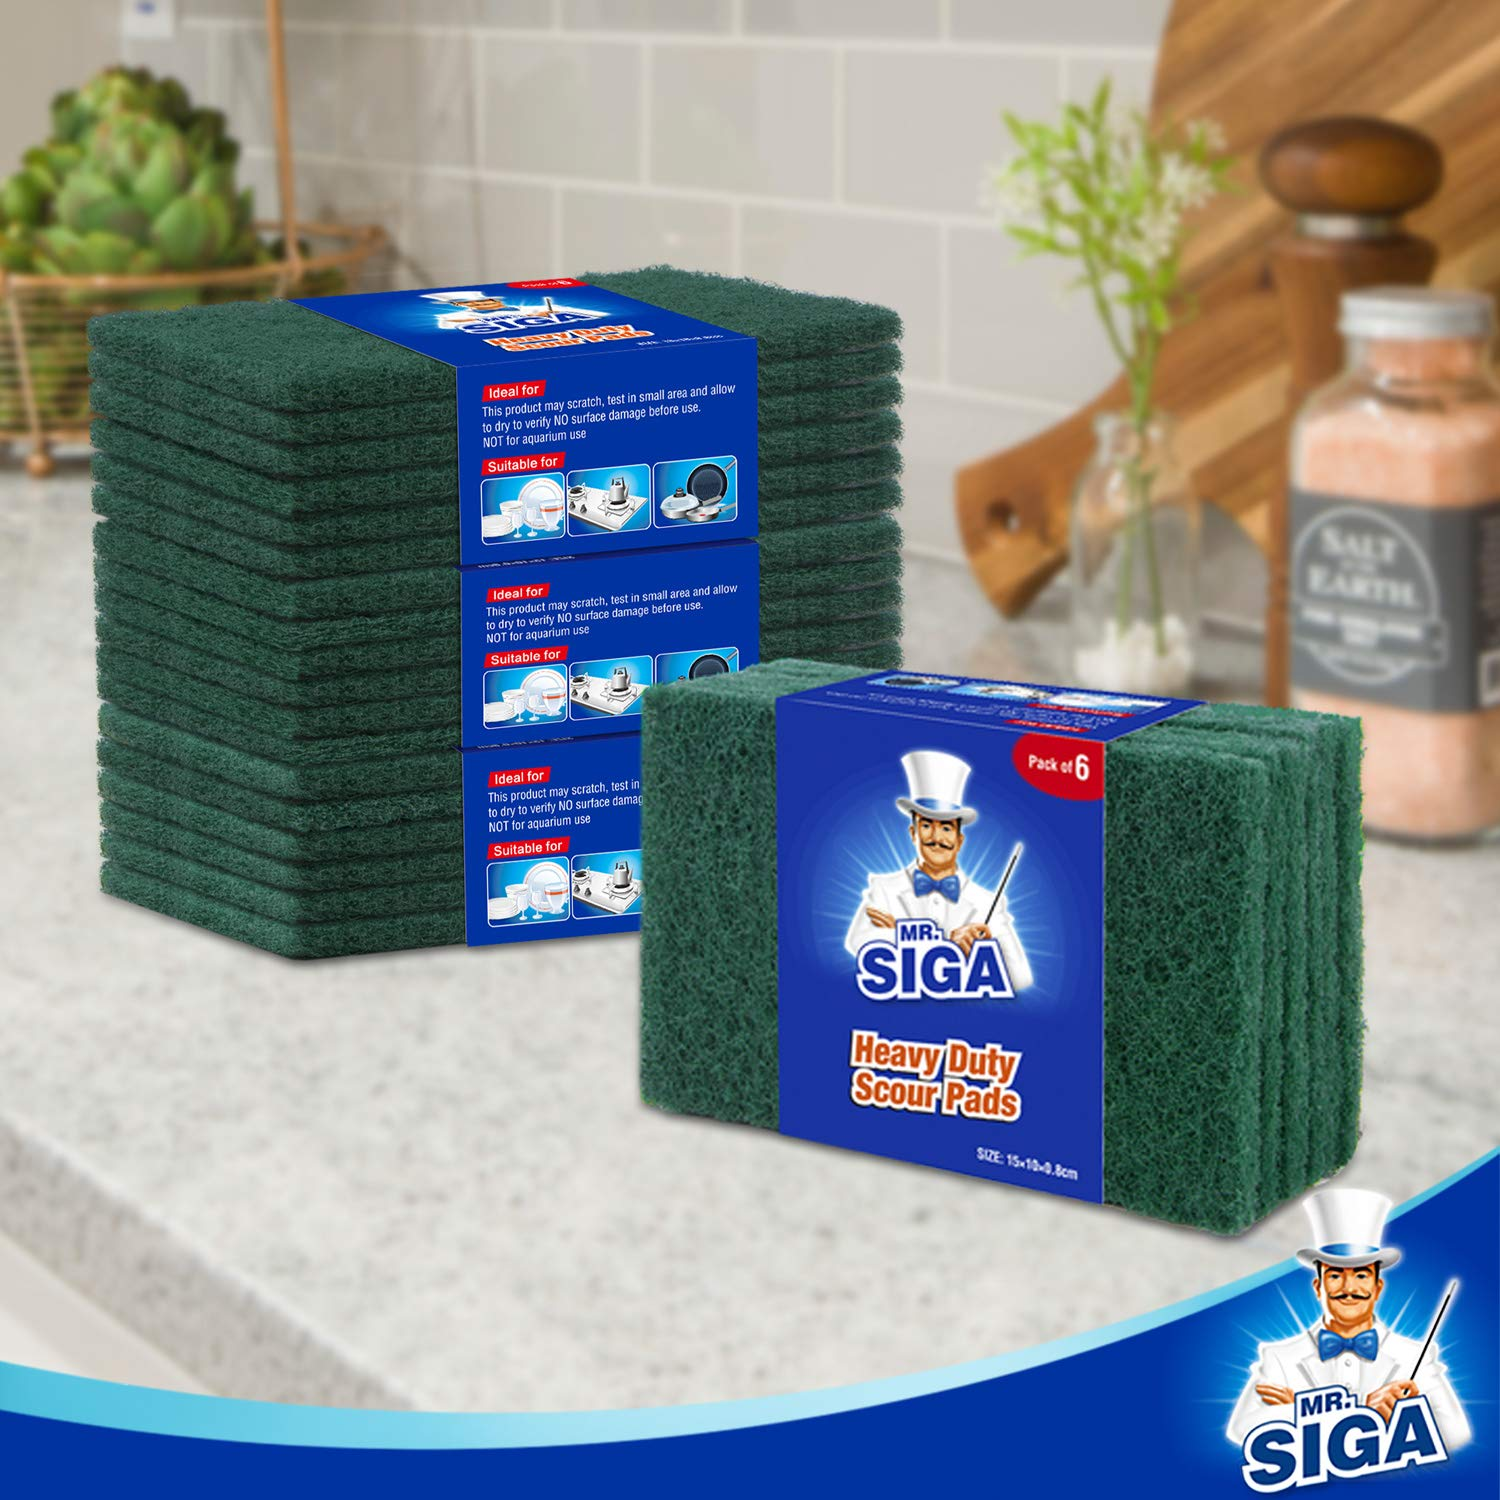 MR.SIGA Heavy Duty Scouring Pads, Household Scrubber for Kitchen, Sink, Dish, 24-Pack, 3.9 x 5.9 inch (10 x 15 cm), Green by MR.SIGA (Image #6)